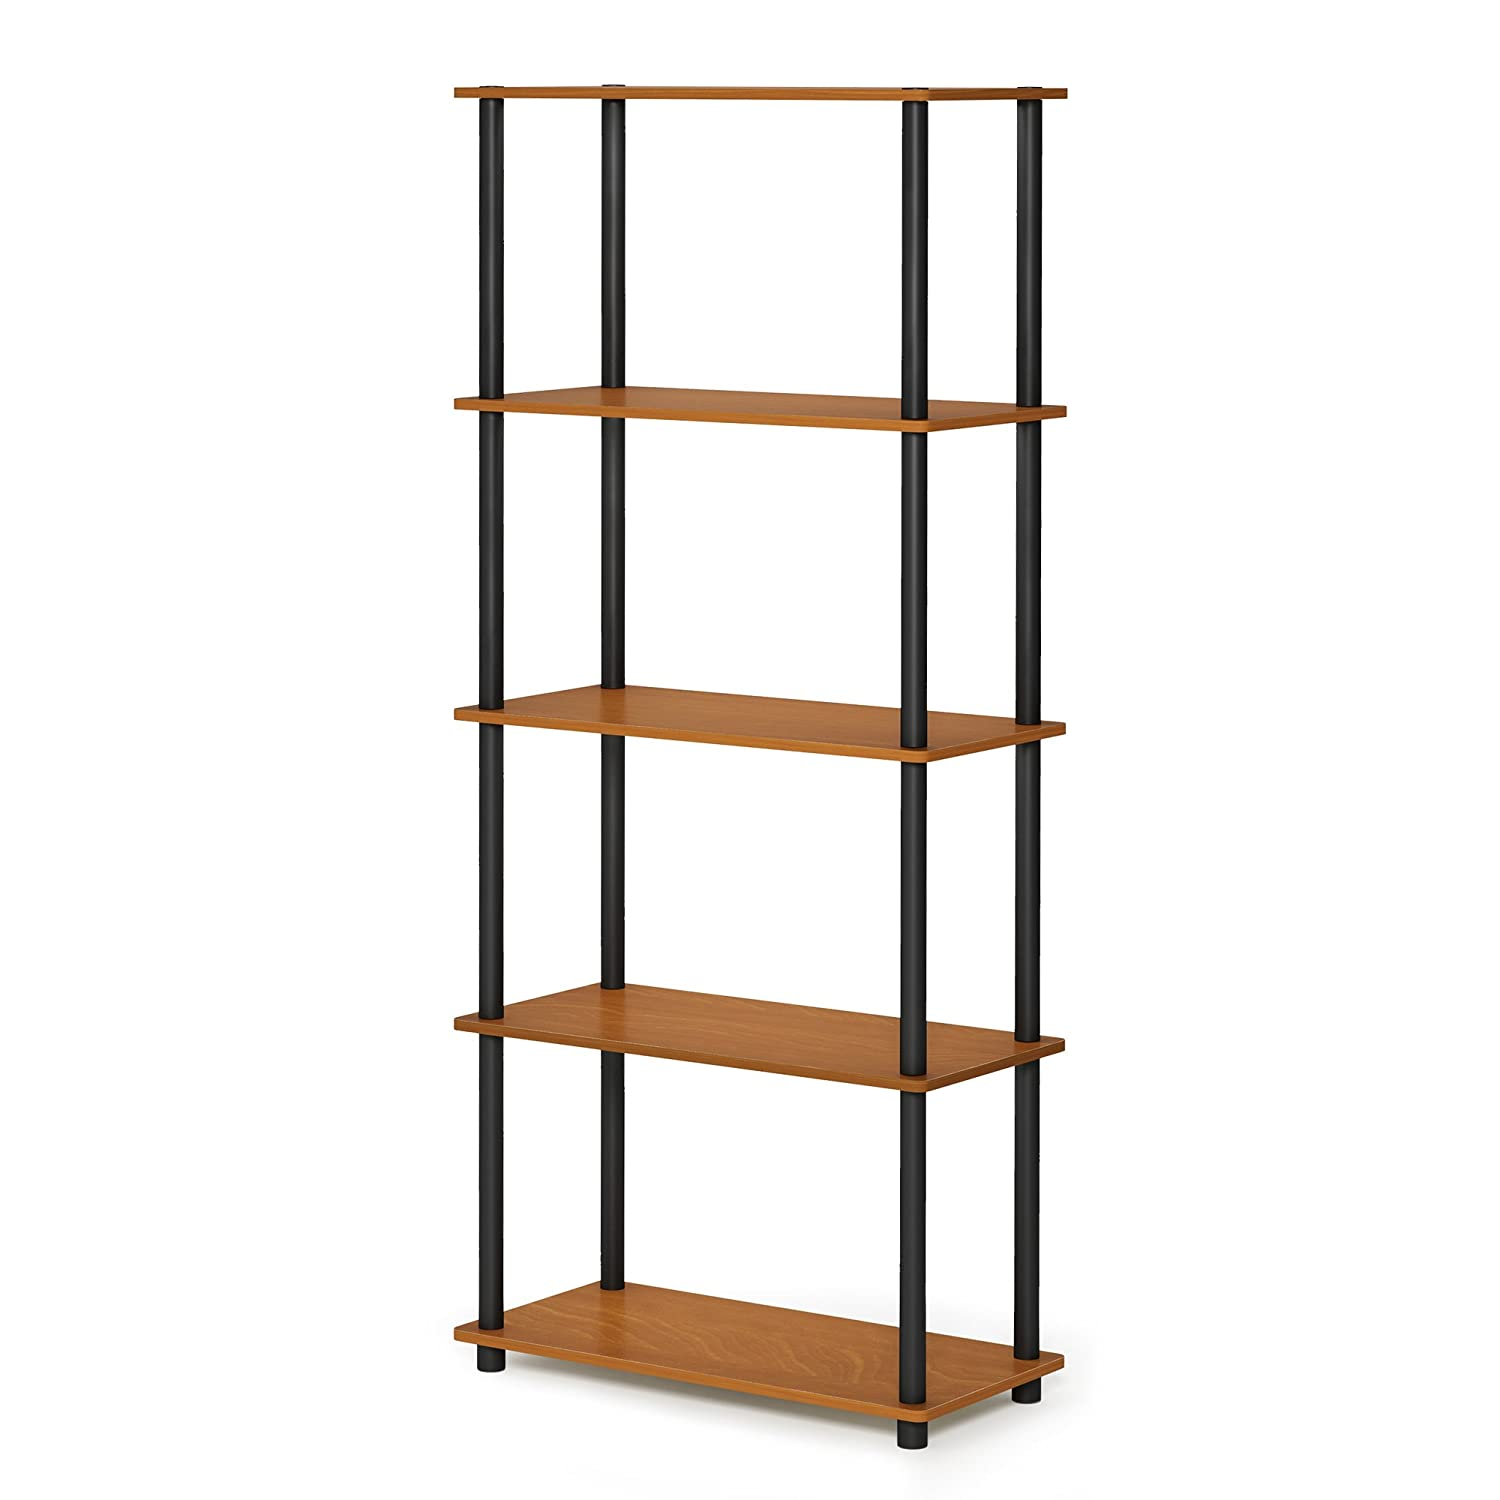 FURINNO Turn-N-Tube 5-Tier Multipurpose Shelf Display Rack, Single, Light Cherry/Black